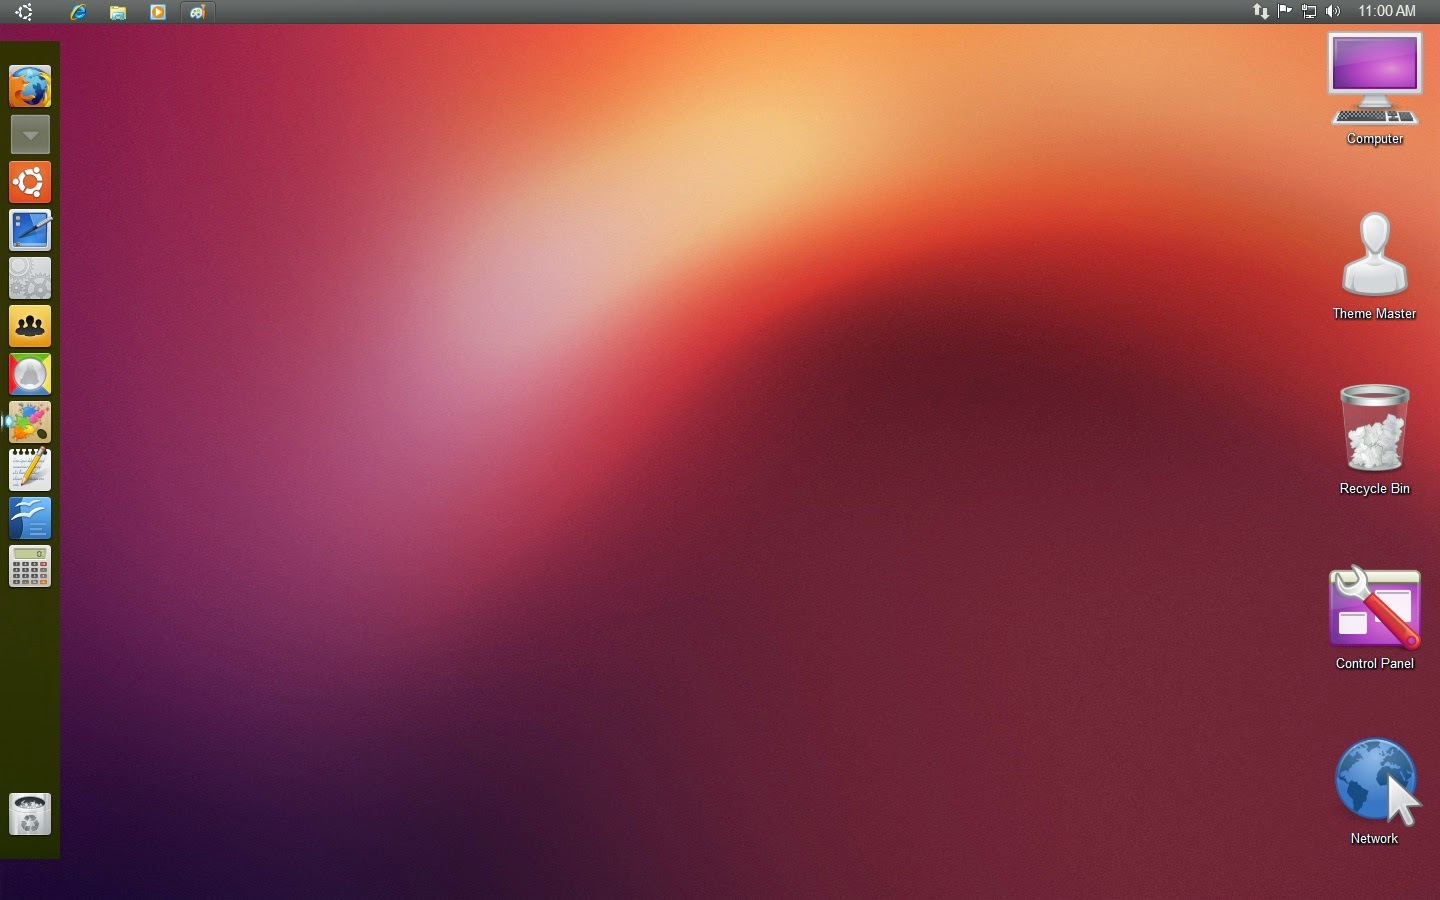 Ubuntu Linux Transformation Pack for your Windows 7 / 8 / 8.1